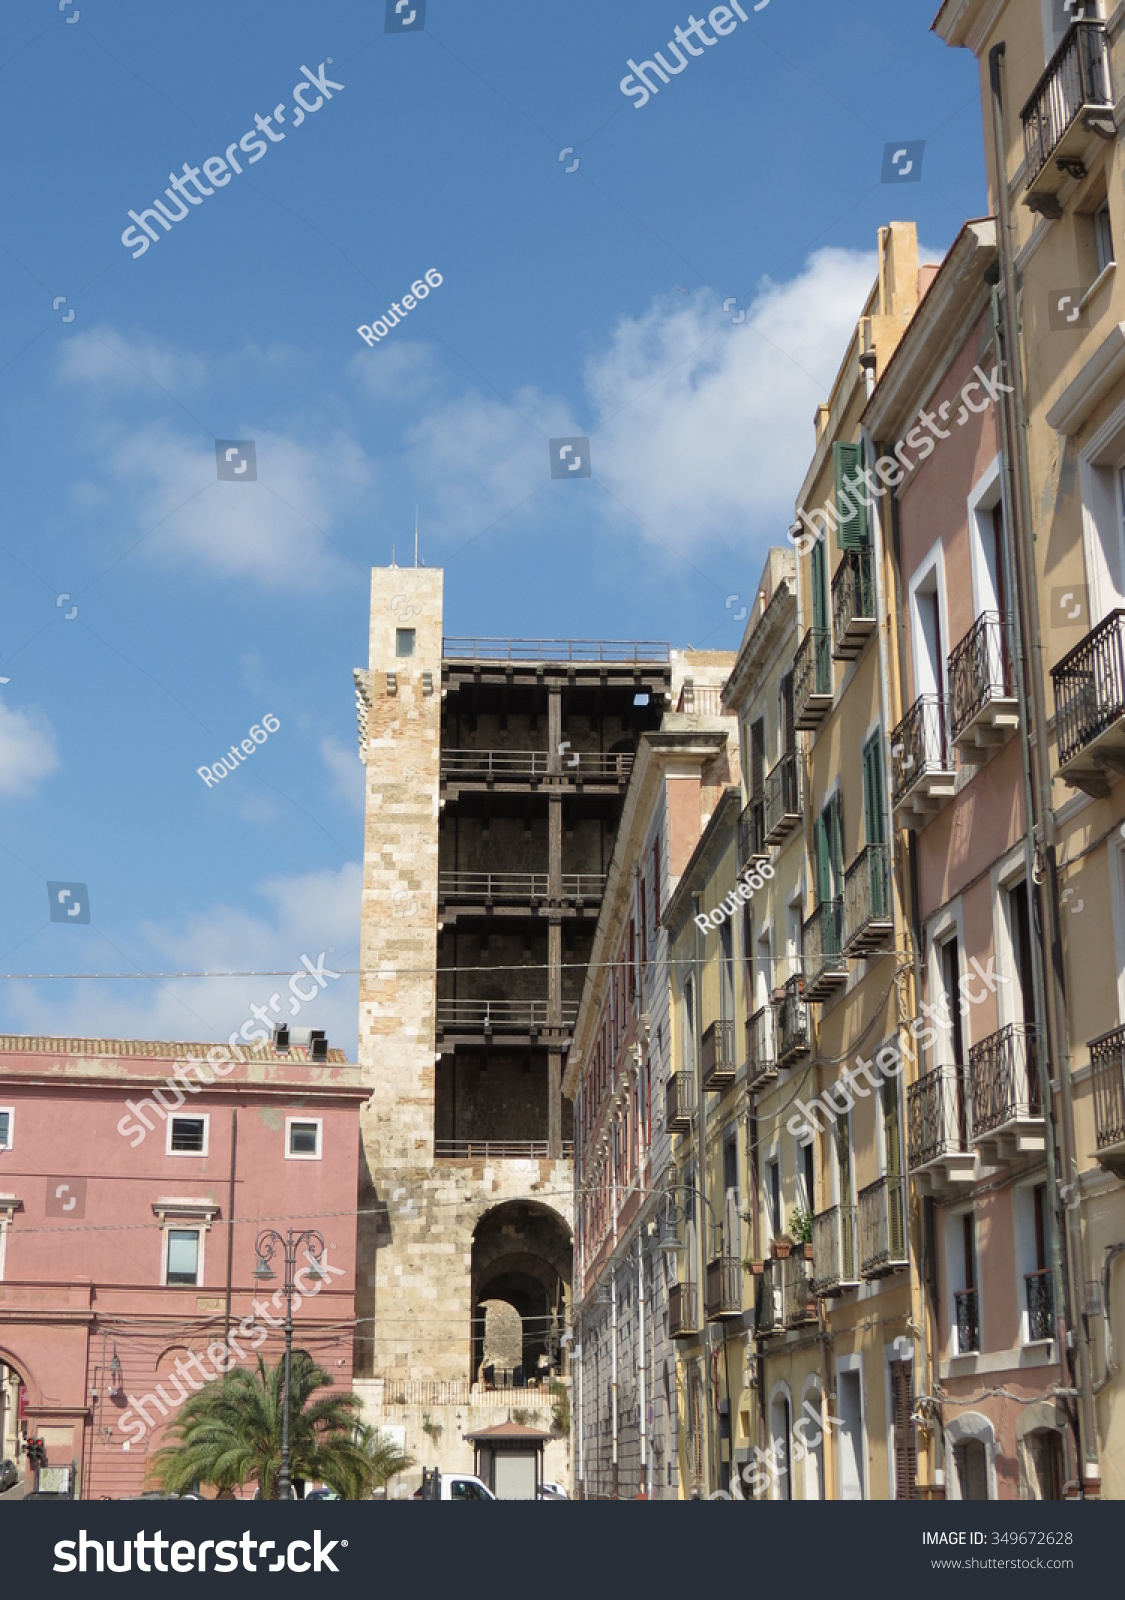 Other Sardegna Cities: